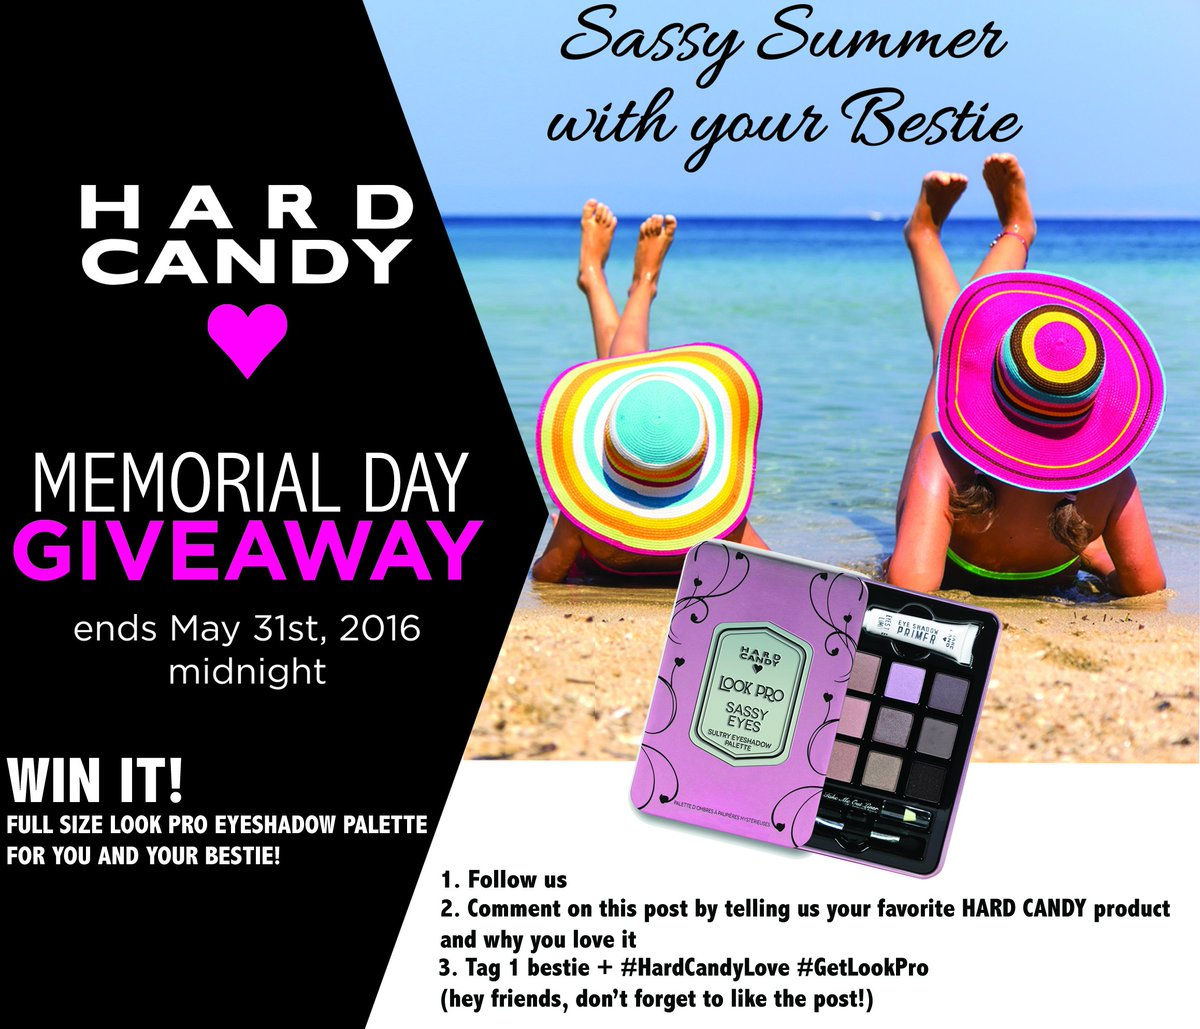 50 Winners on Twitter+BFF will win our #MemorialDay #GIVEAWAY! US RESIDENTS (age 18+) https://t.co/5gr0A5E0Hn https://t.co/Nj5YM4vAqo